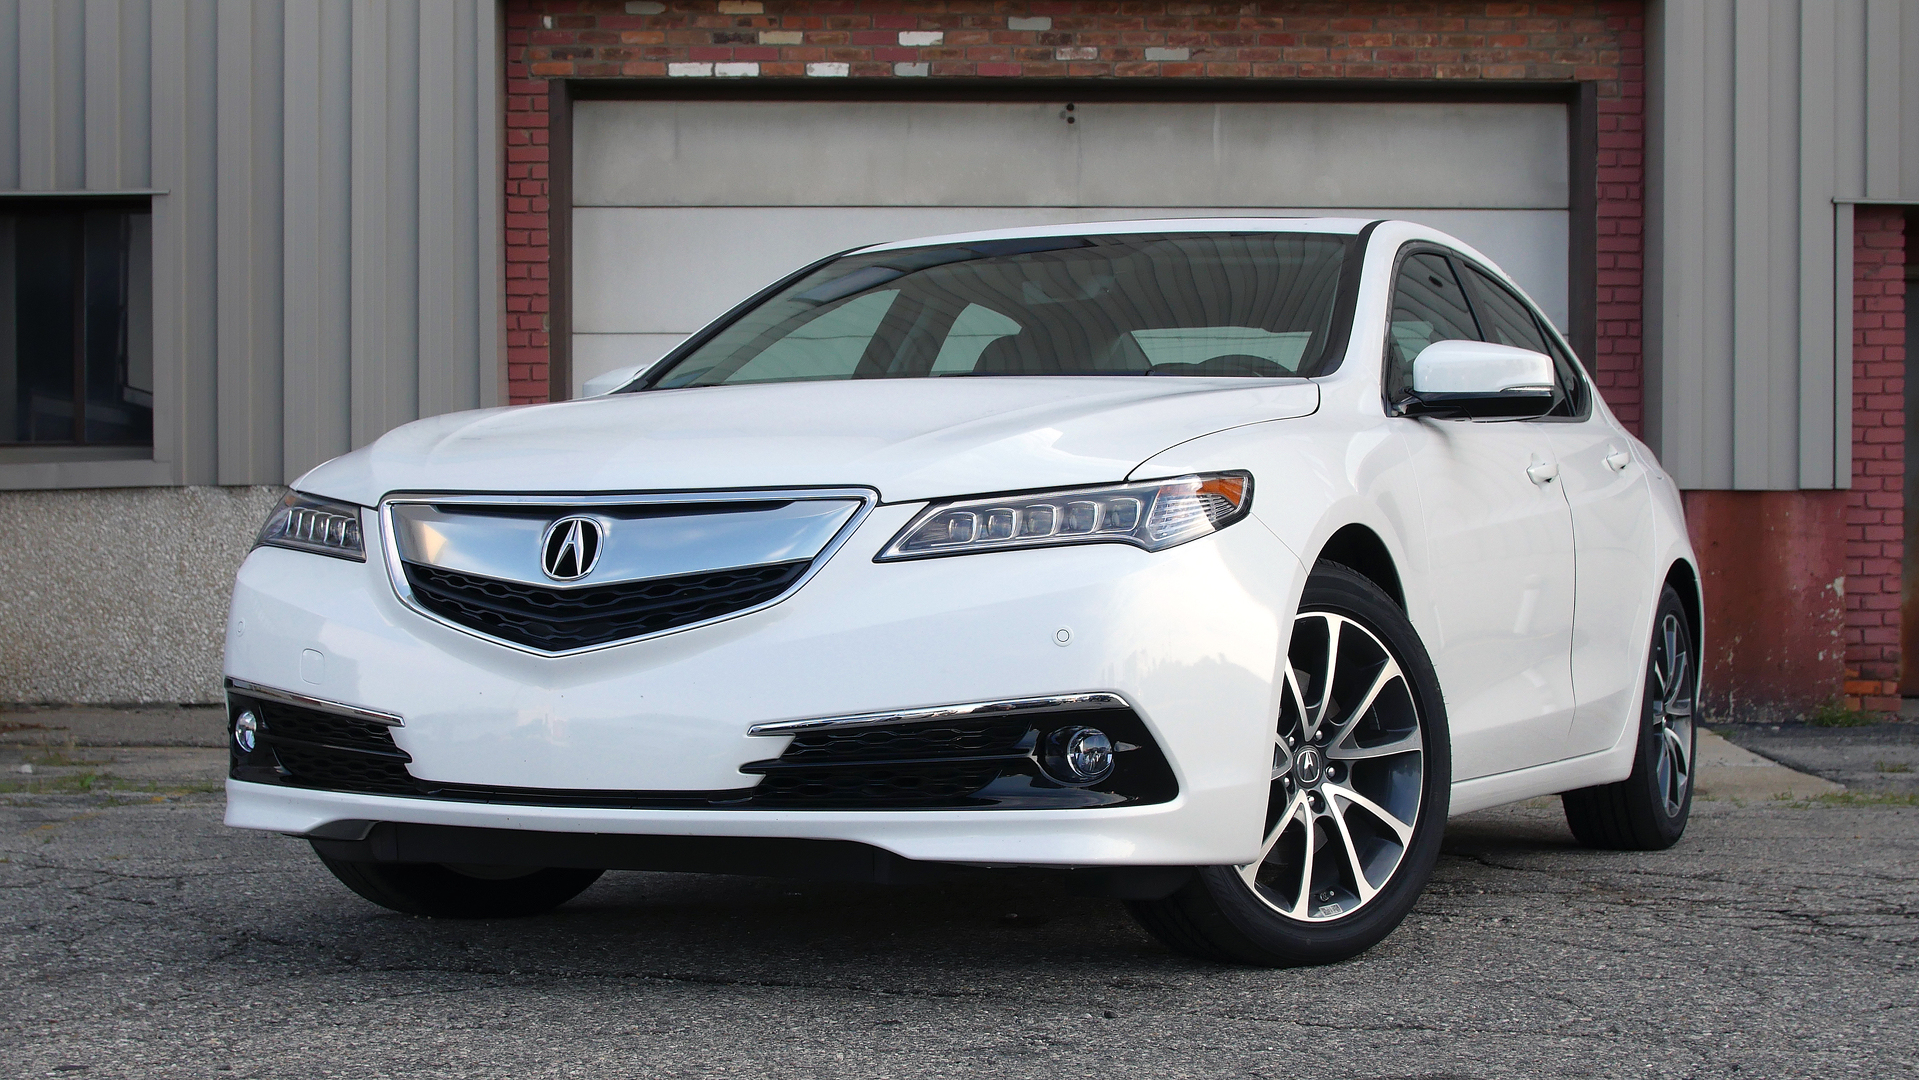 Review Acura TLX - Acura golf clubs